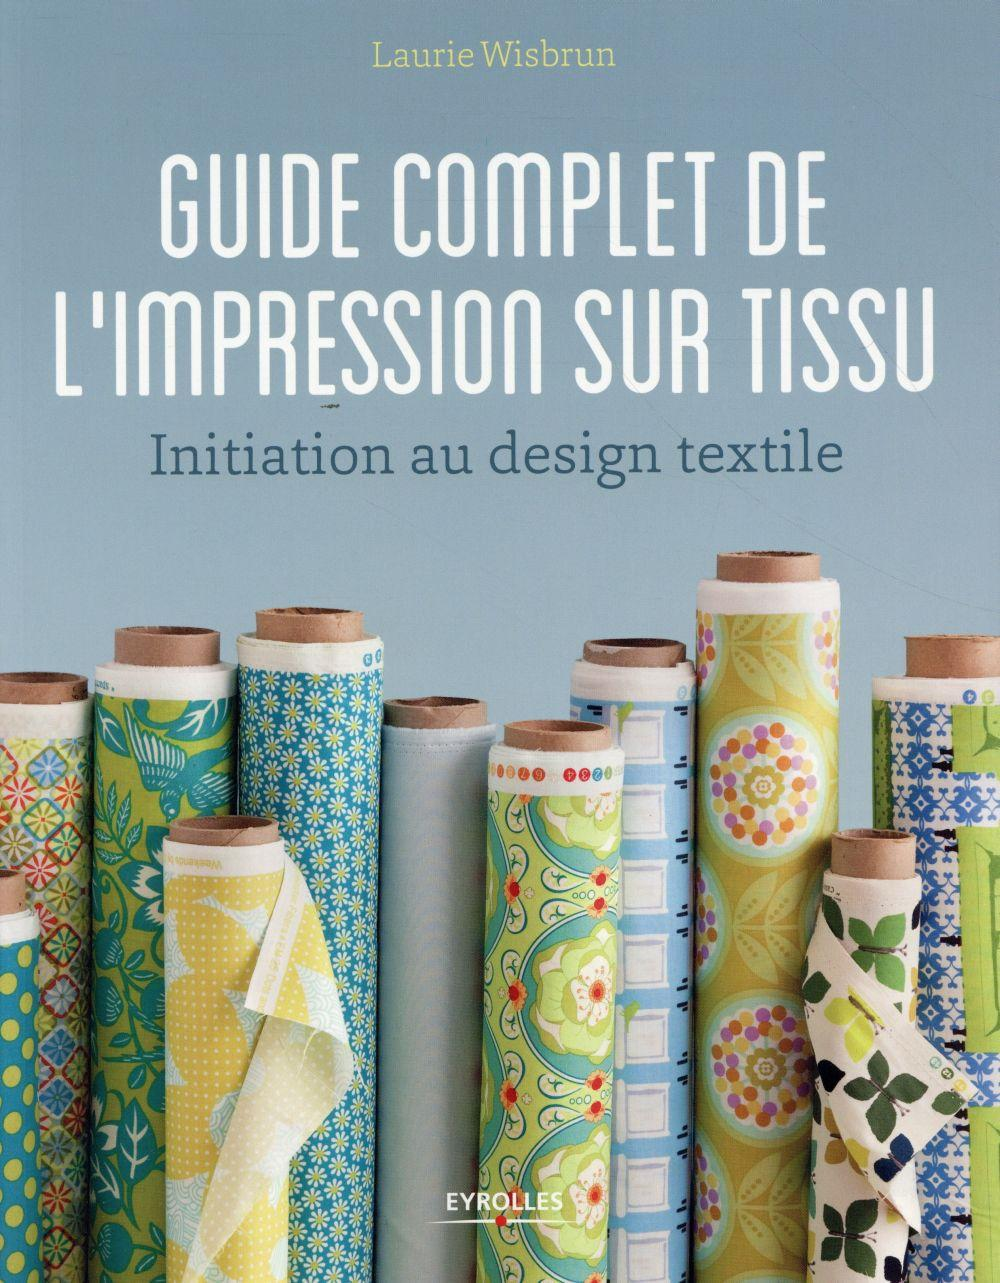 Guide complet de l'impression sur tissu ; initiation au design textile  - Laurie Wisbrun